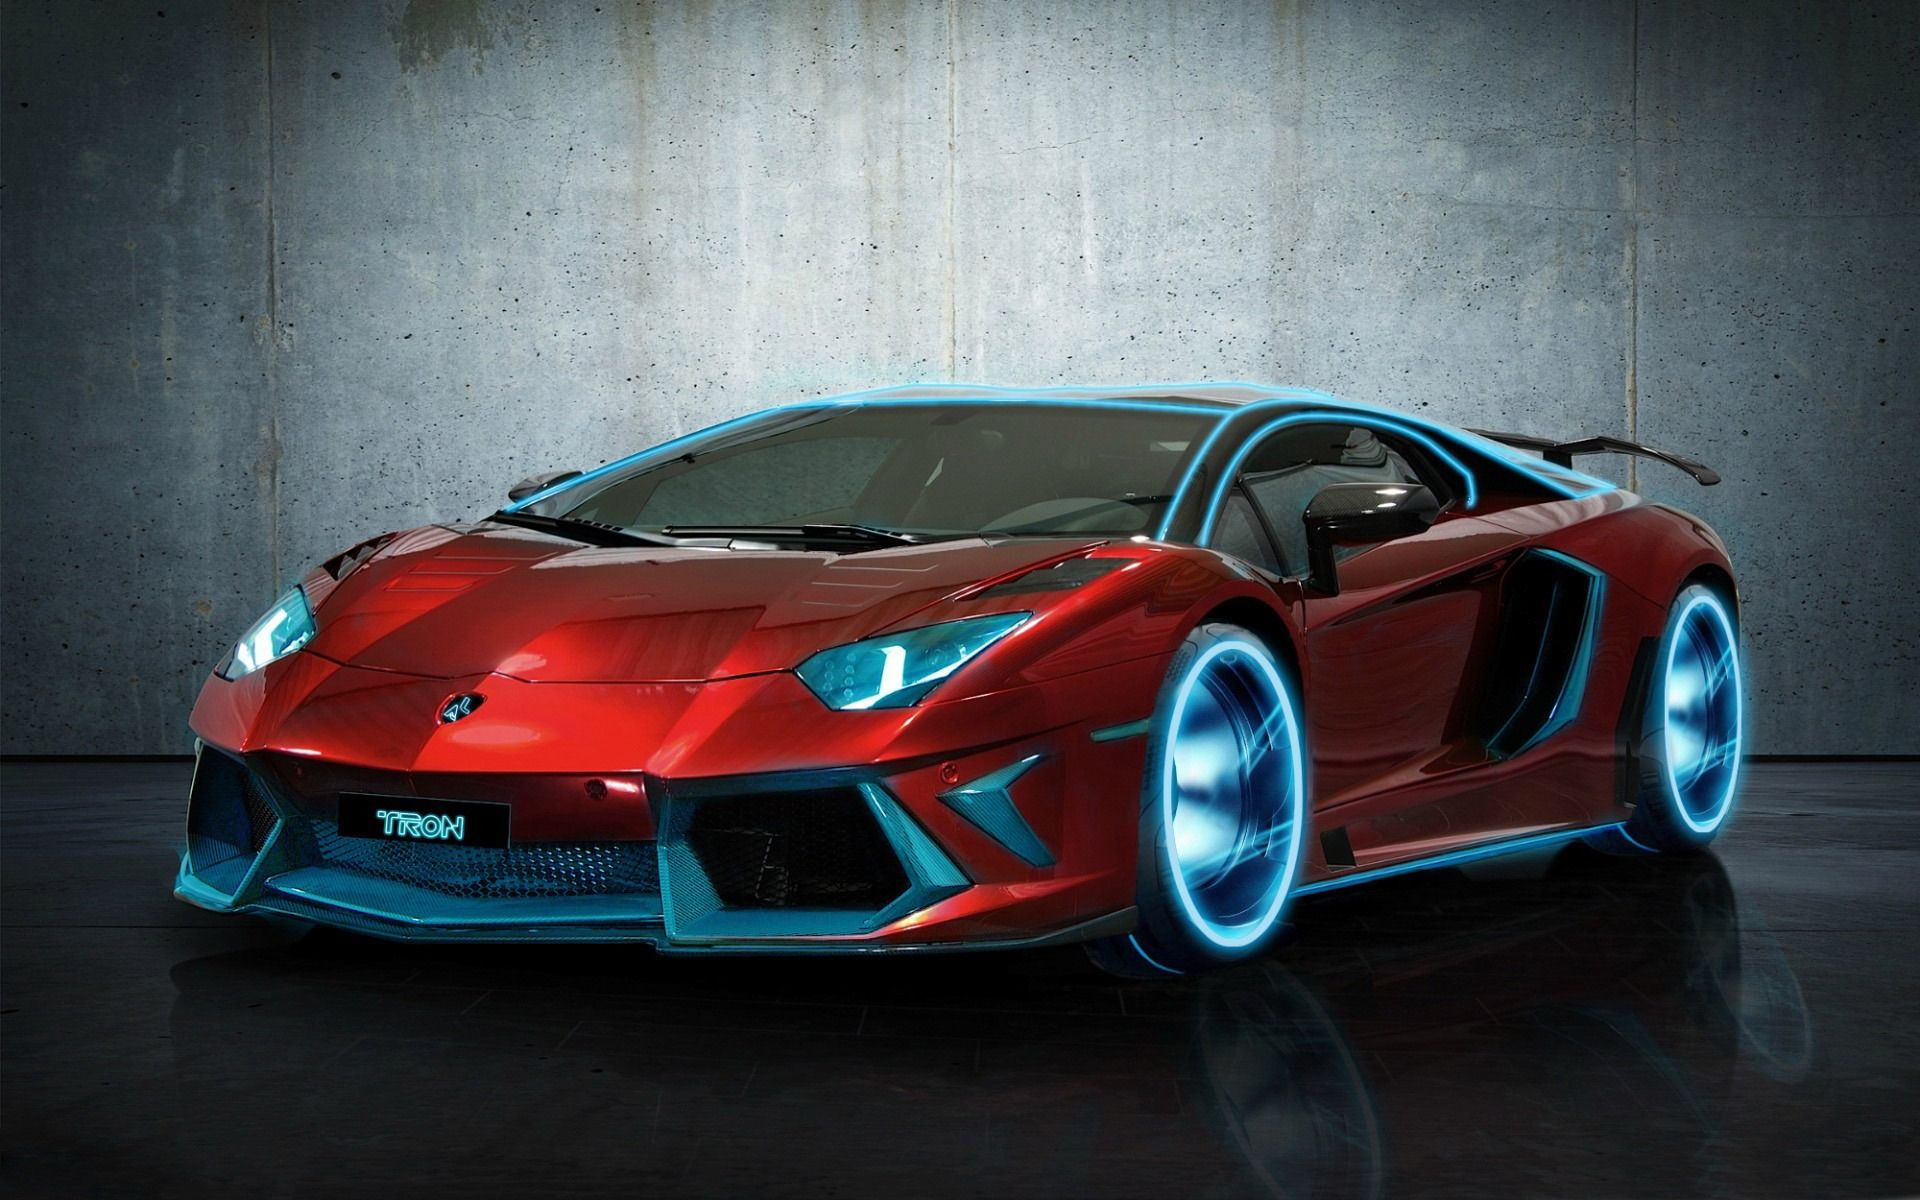 11 Awesome And Cool Cars Wallpapers | Wallpaper | Lamborghini cars, Car backgrounds, Lamborghini